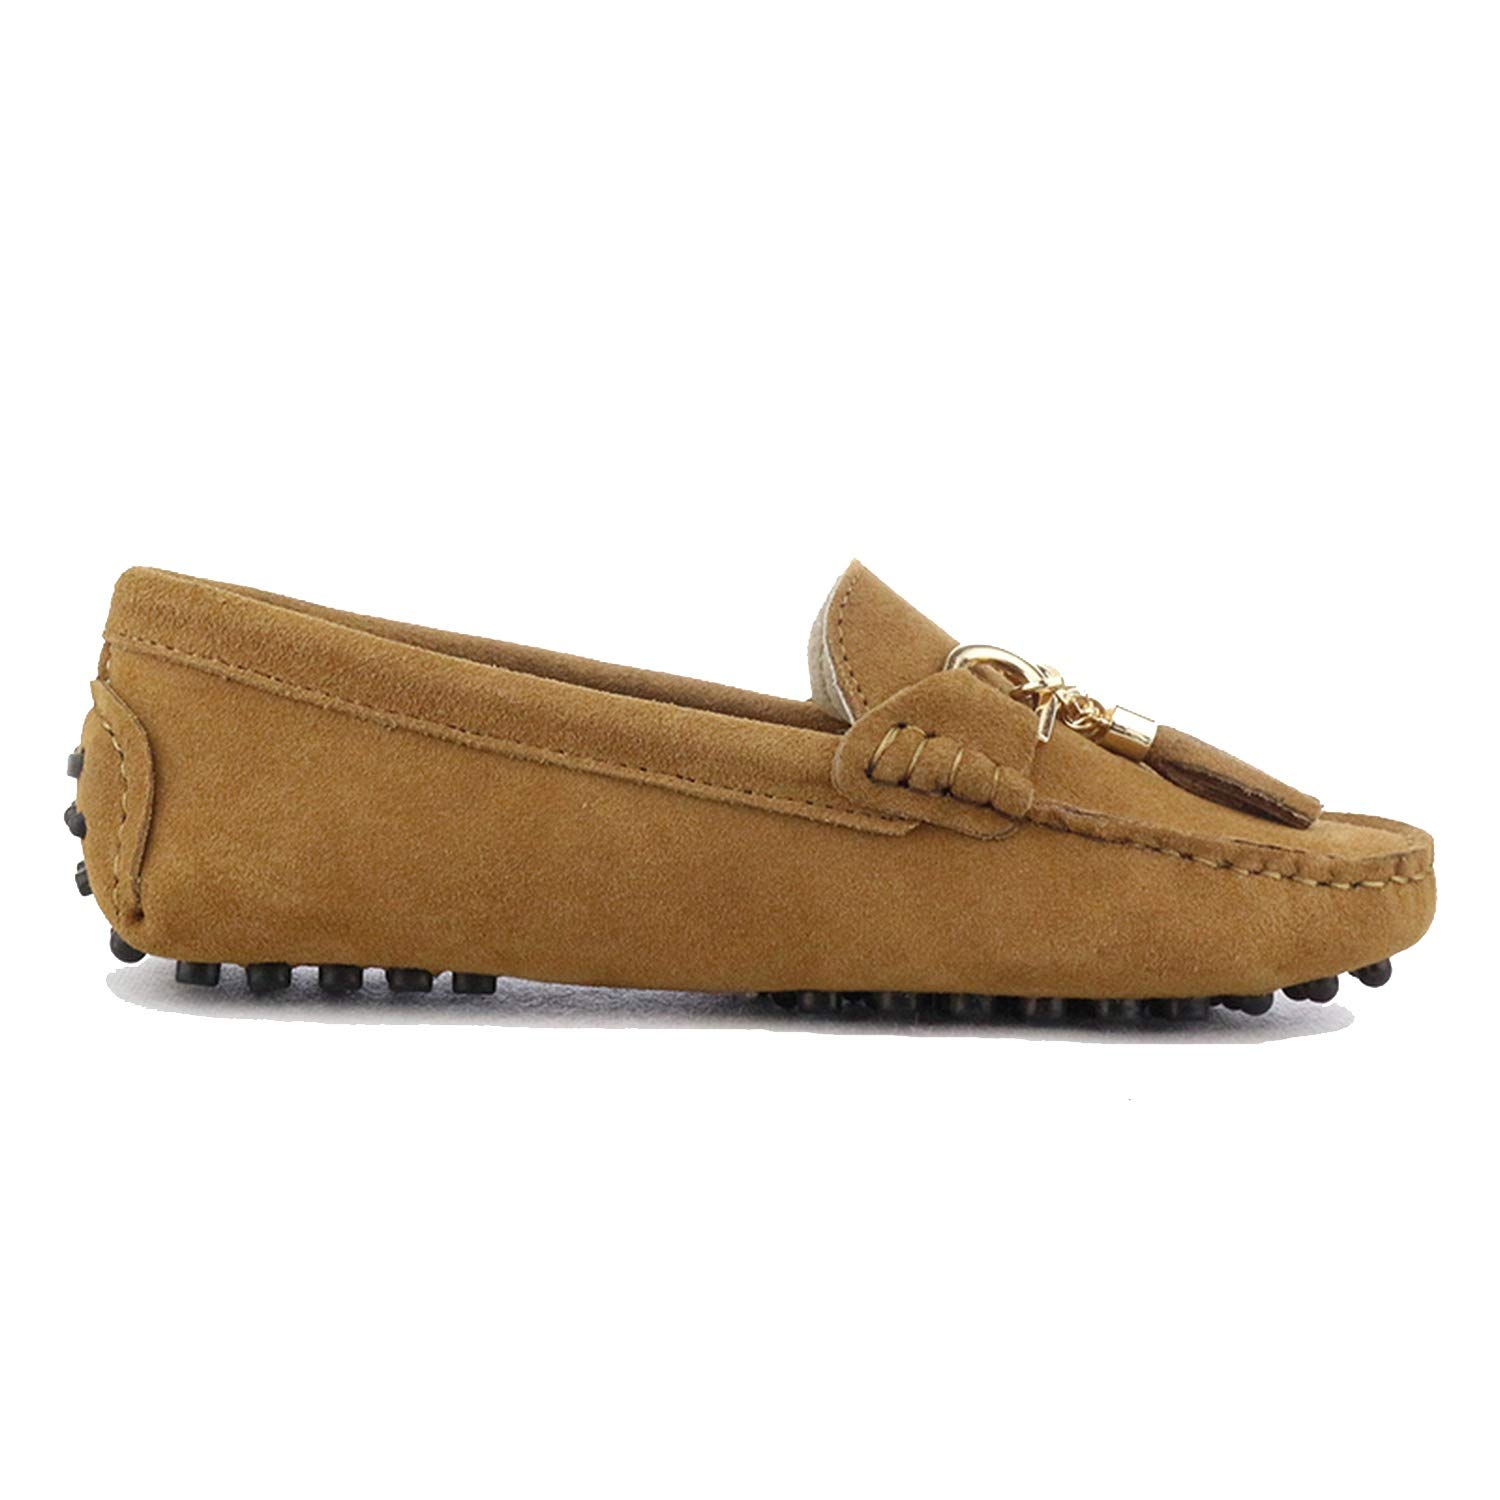 Chestnut Fashion Women Lady Leather Loafers Casual Driving shoes Women Flats shoes